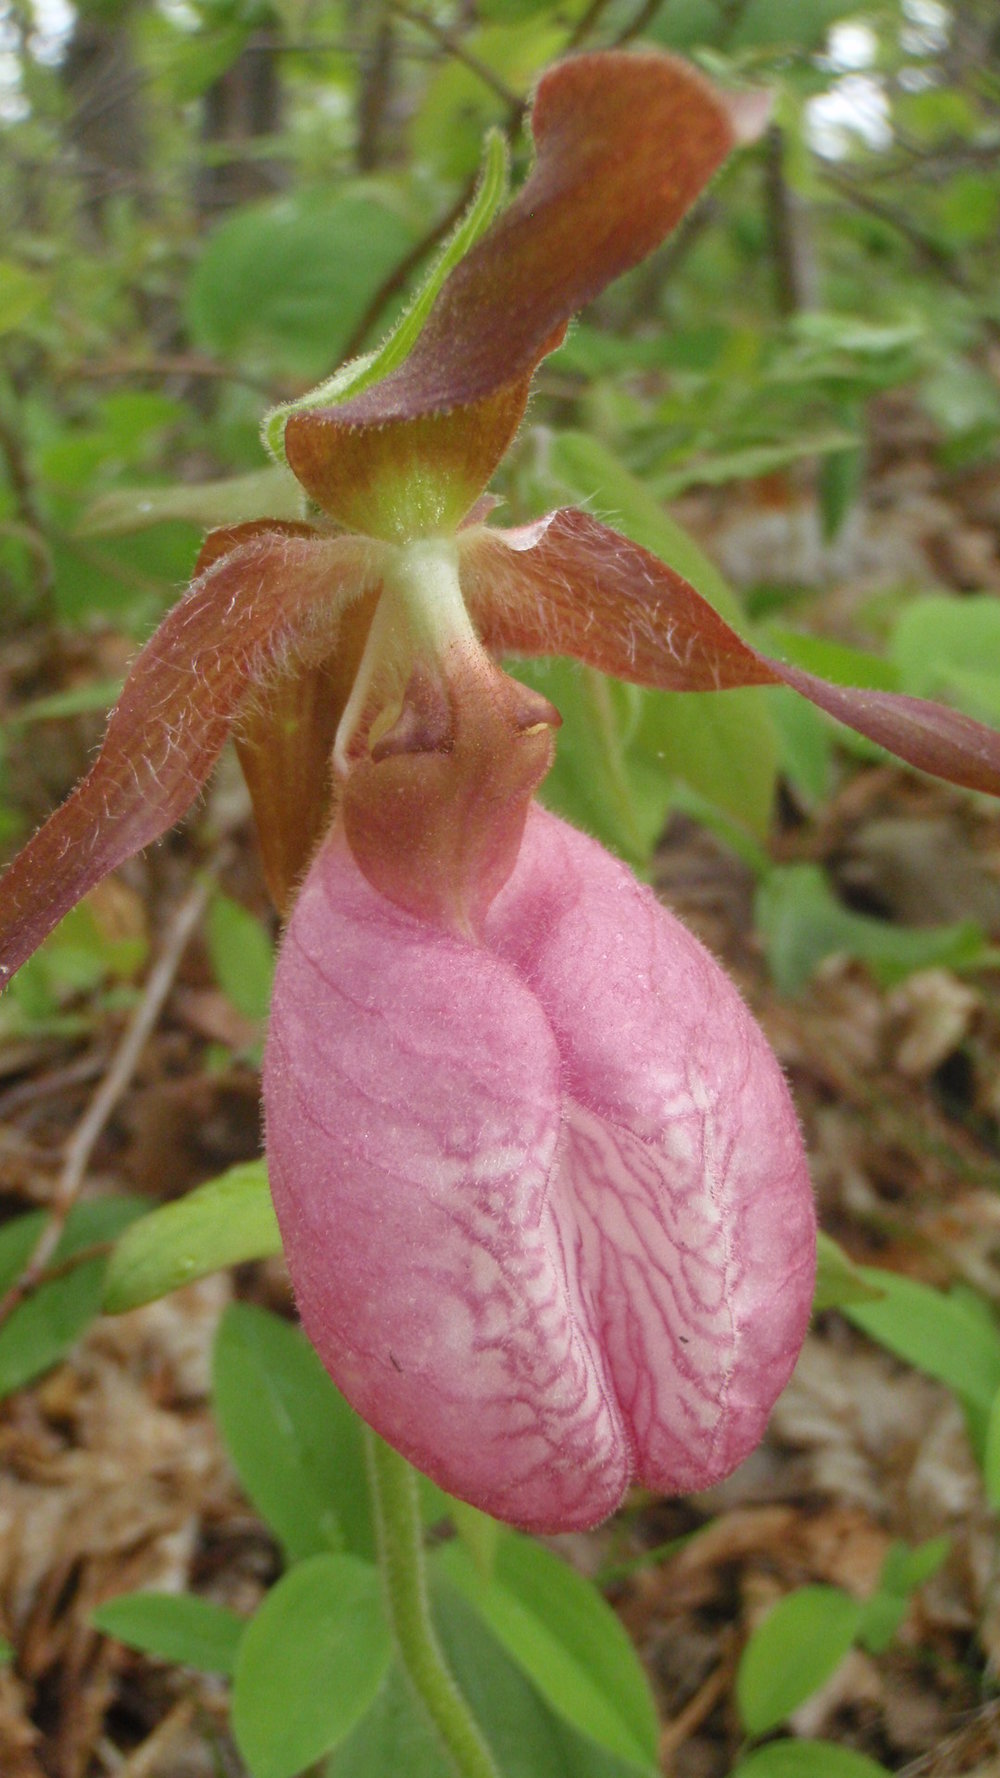 Moccasin flower (pink lady's slipper)